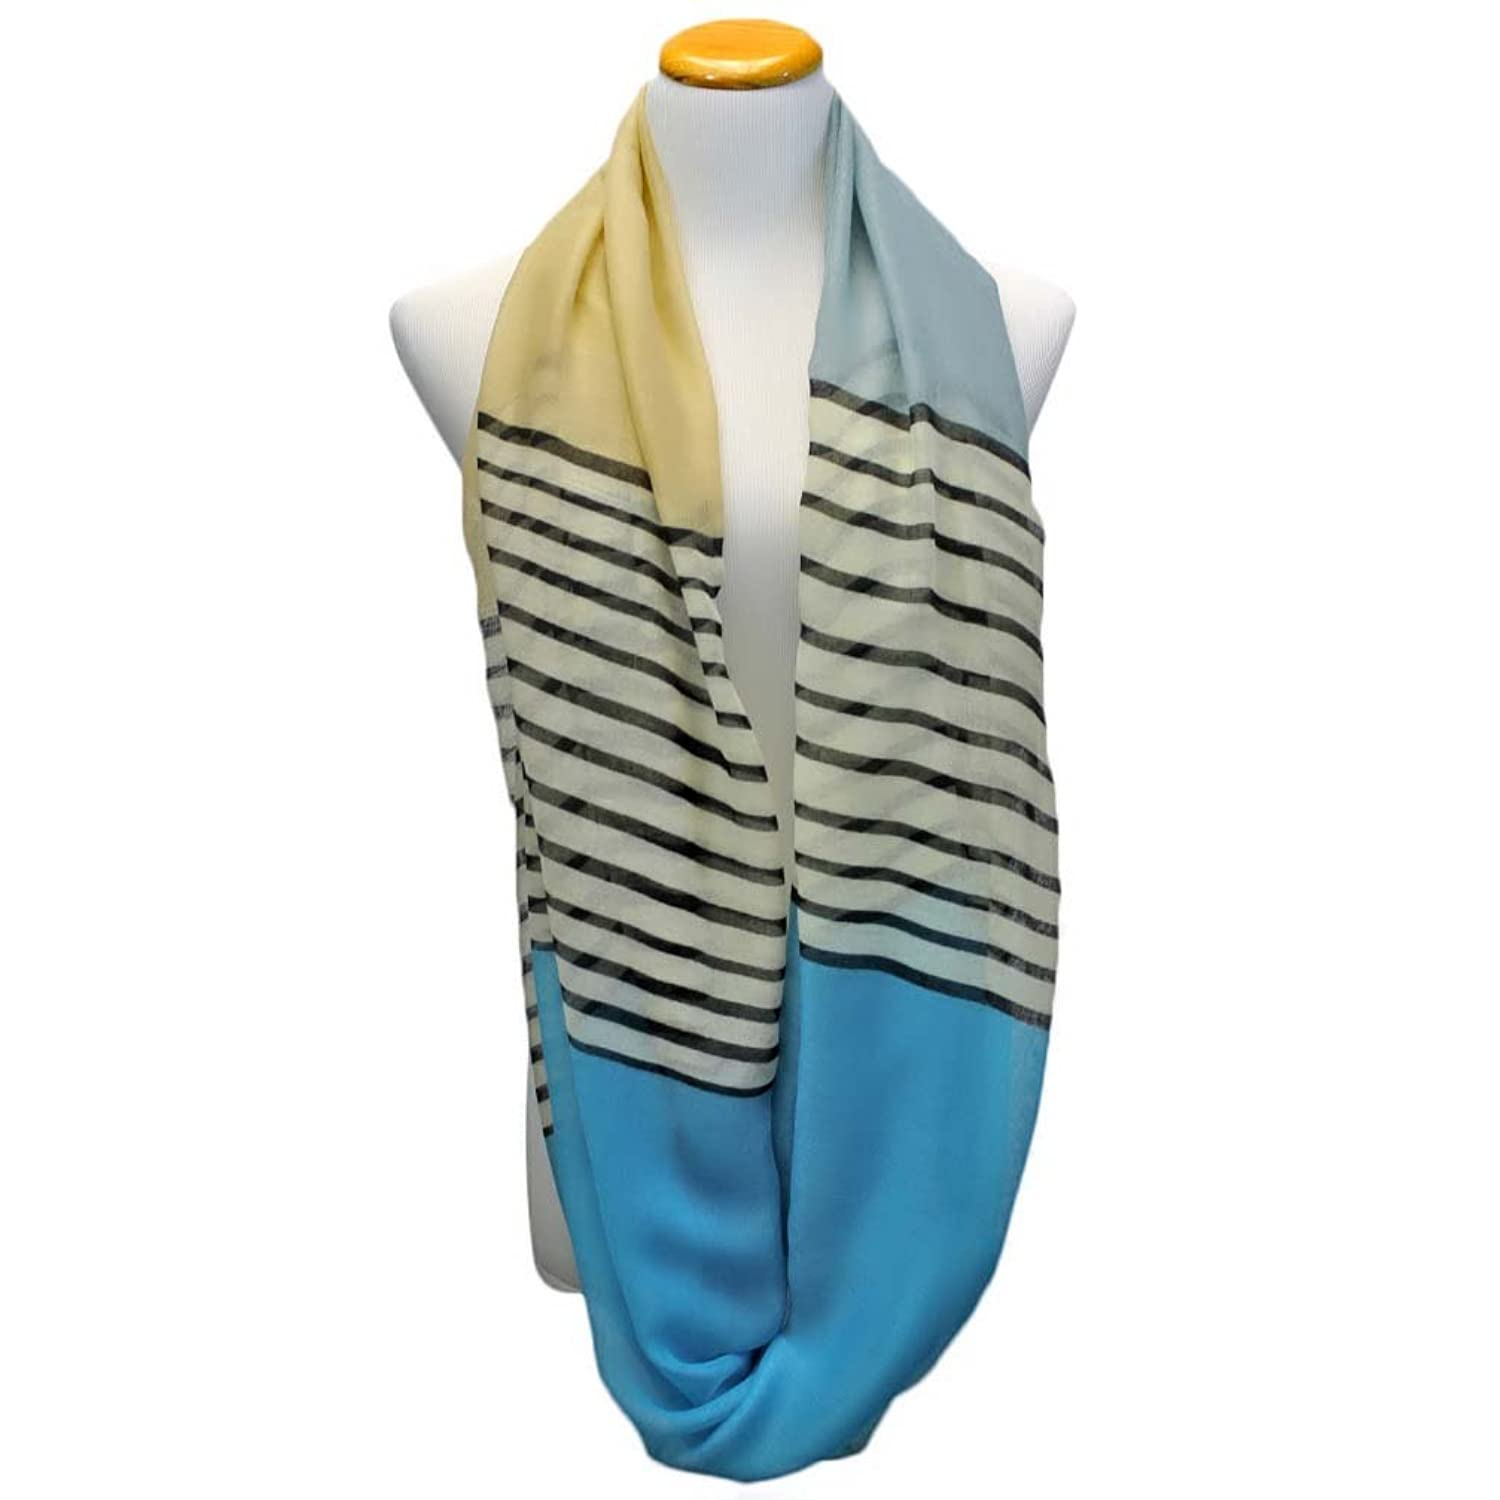 Luxury Divas Color Block Striped Scarf